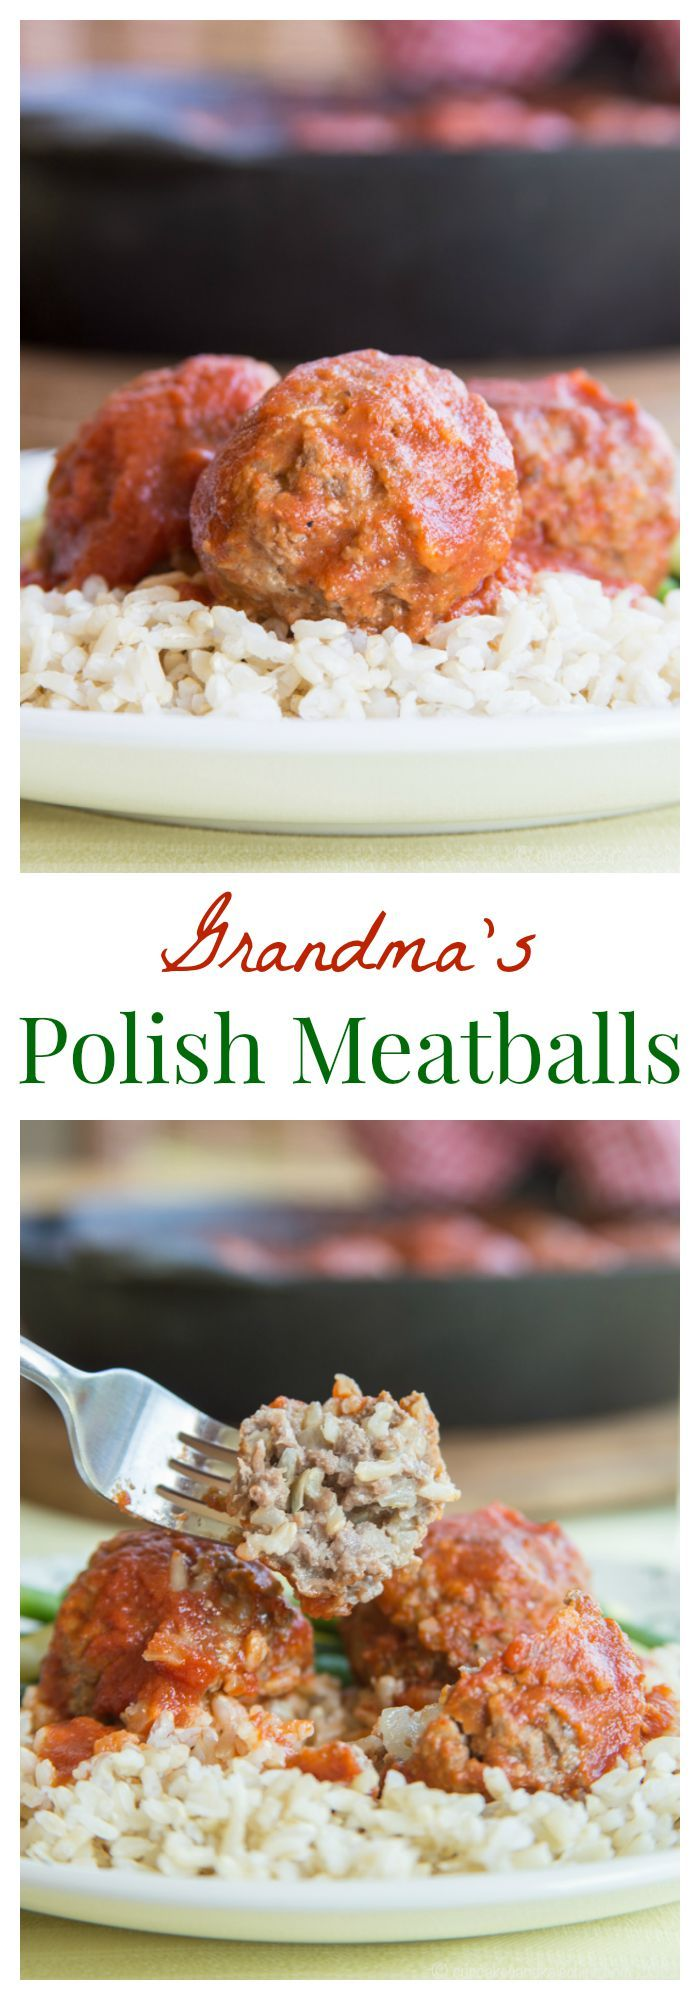 "Grandma's Polish Meatballs (aka ""Porcupine Meatballs"") - whenever my grandma made her traditional stuffed cabbage, she would take some of the savory meat filling and make these for me for #SundaySupper. 